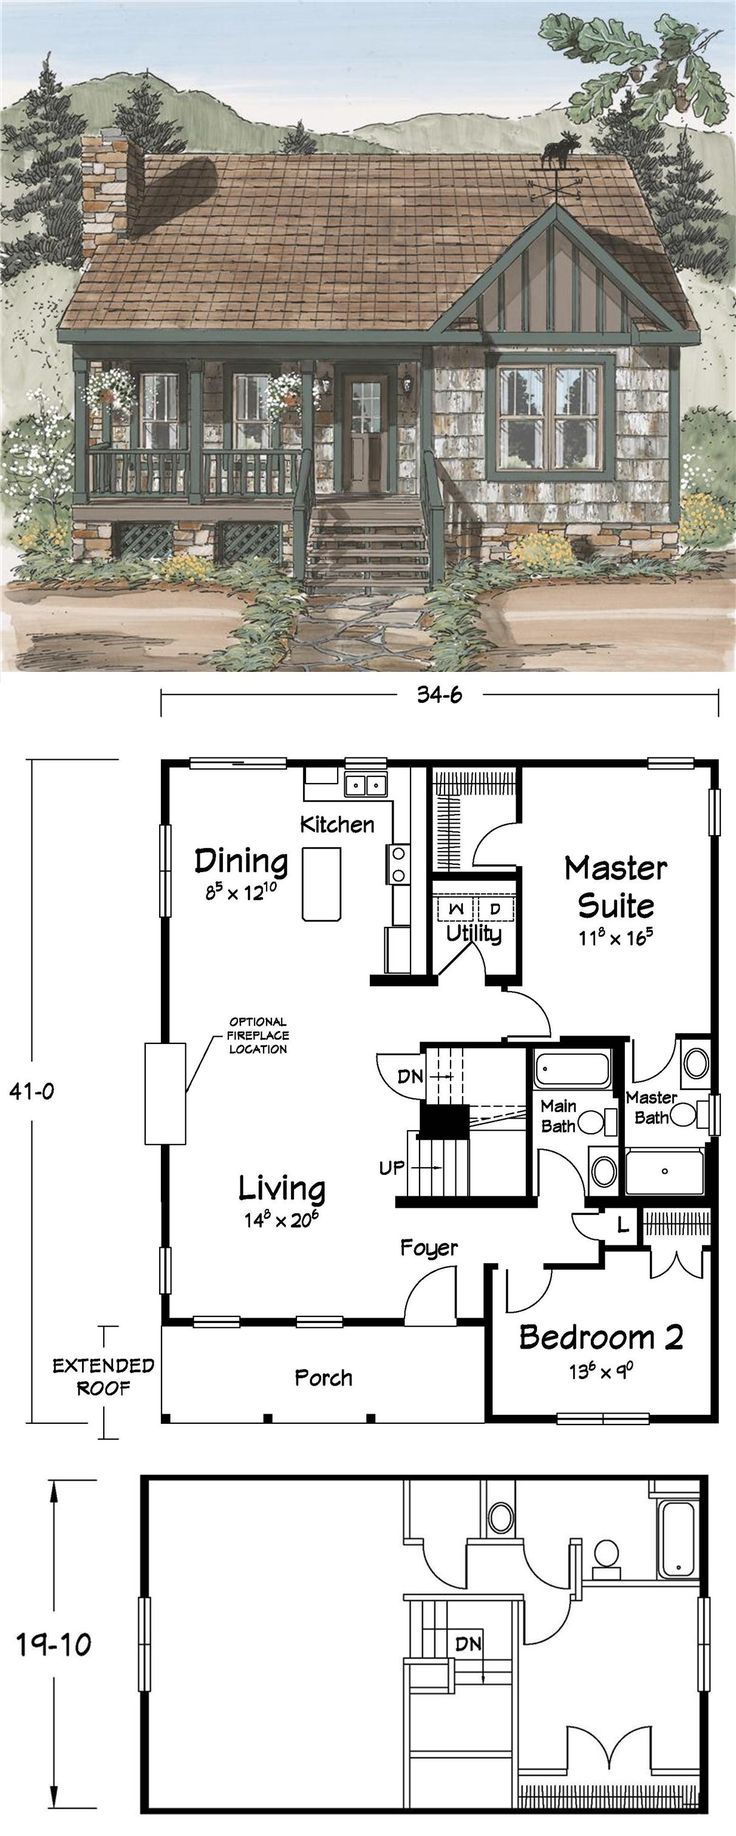 Cute floor plans tiny homes pinterest cabin small for Small cabin building plans